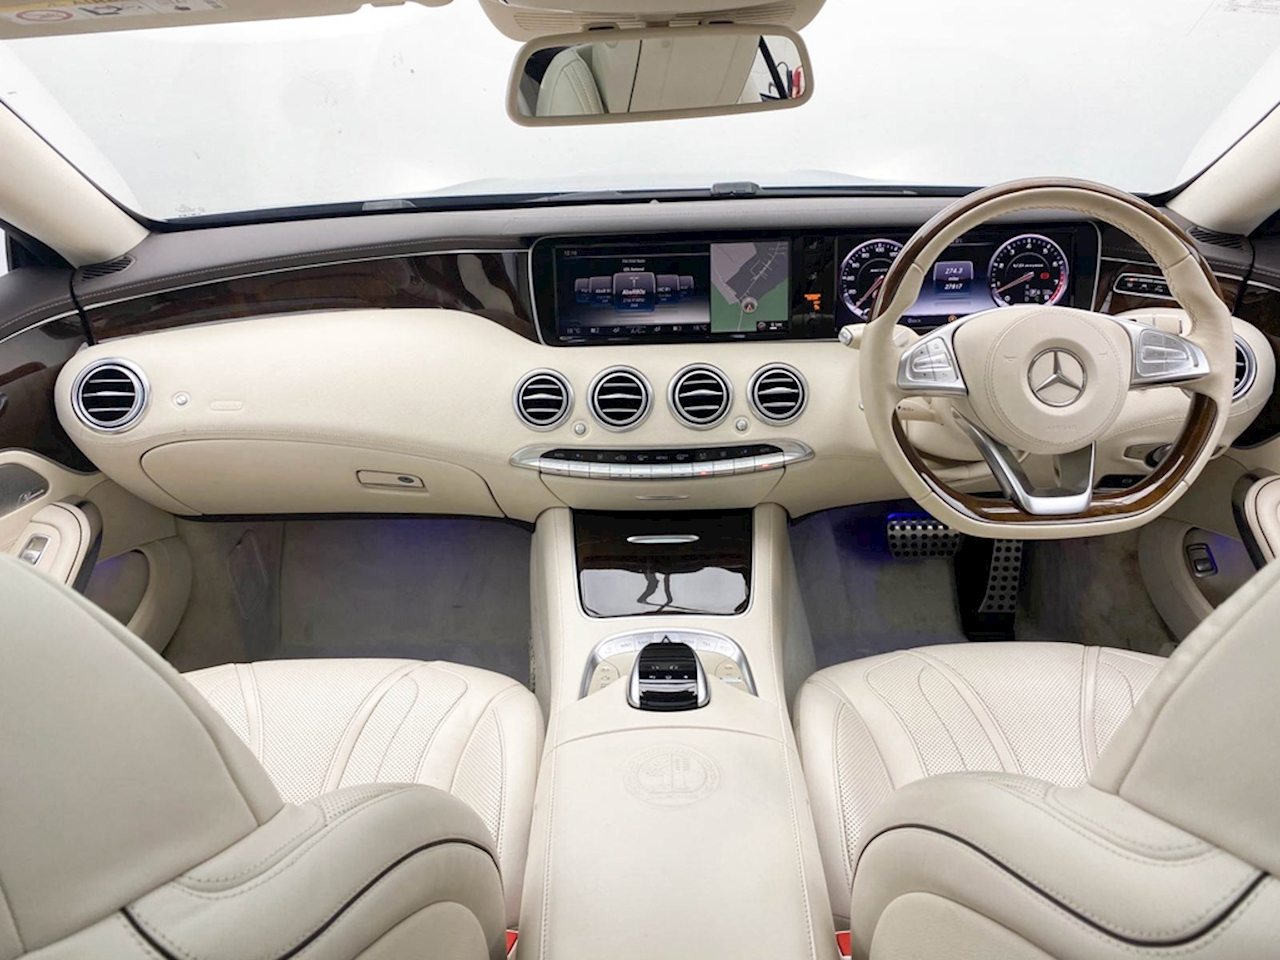 Mercedes-Benz S Class AMG Coupe 5.5 SpdS MCT Petrol